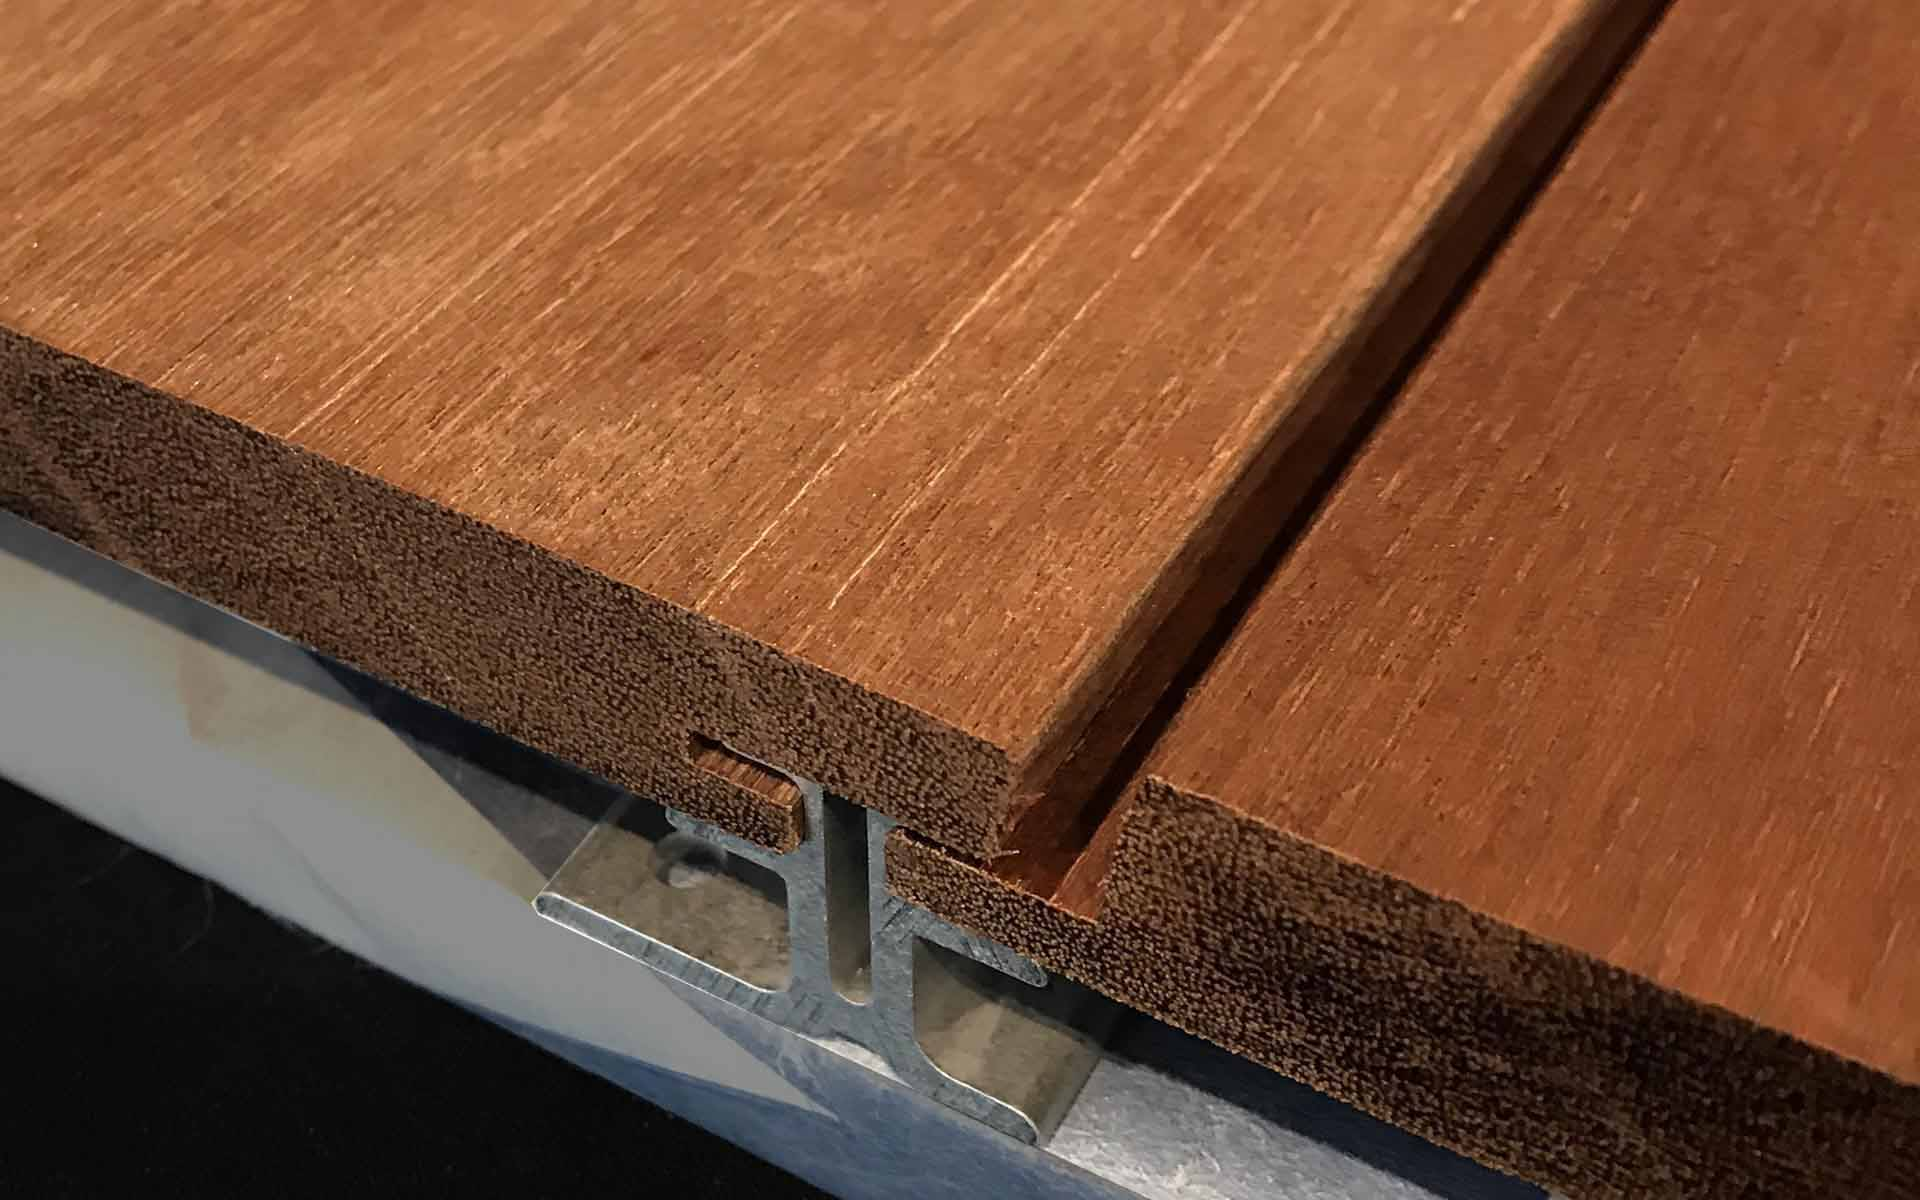 03. Rainscreen-Siding-Clip-Batu-Hardwood.jpg